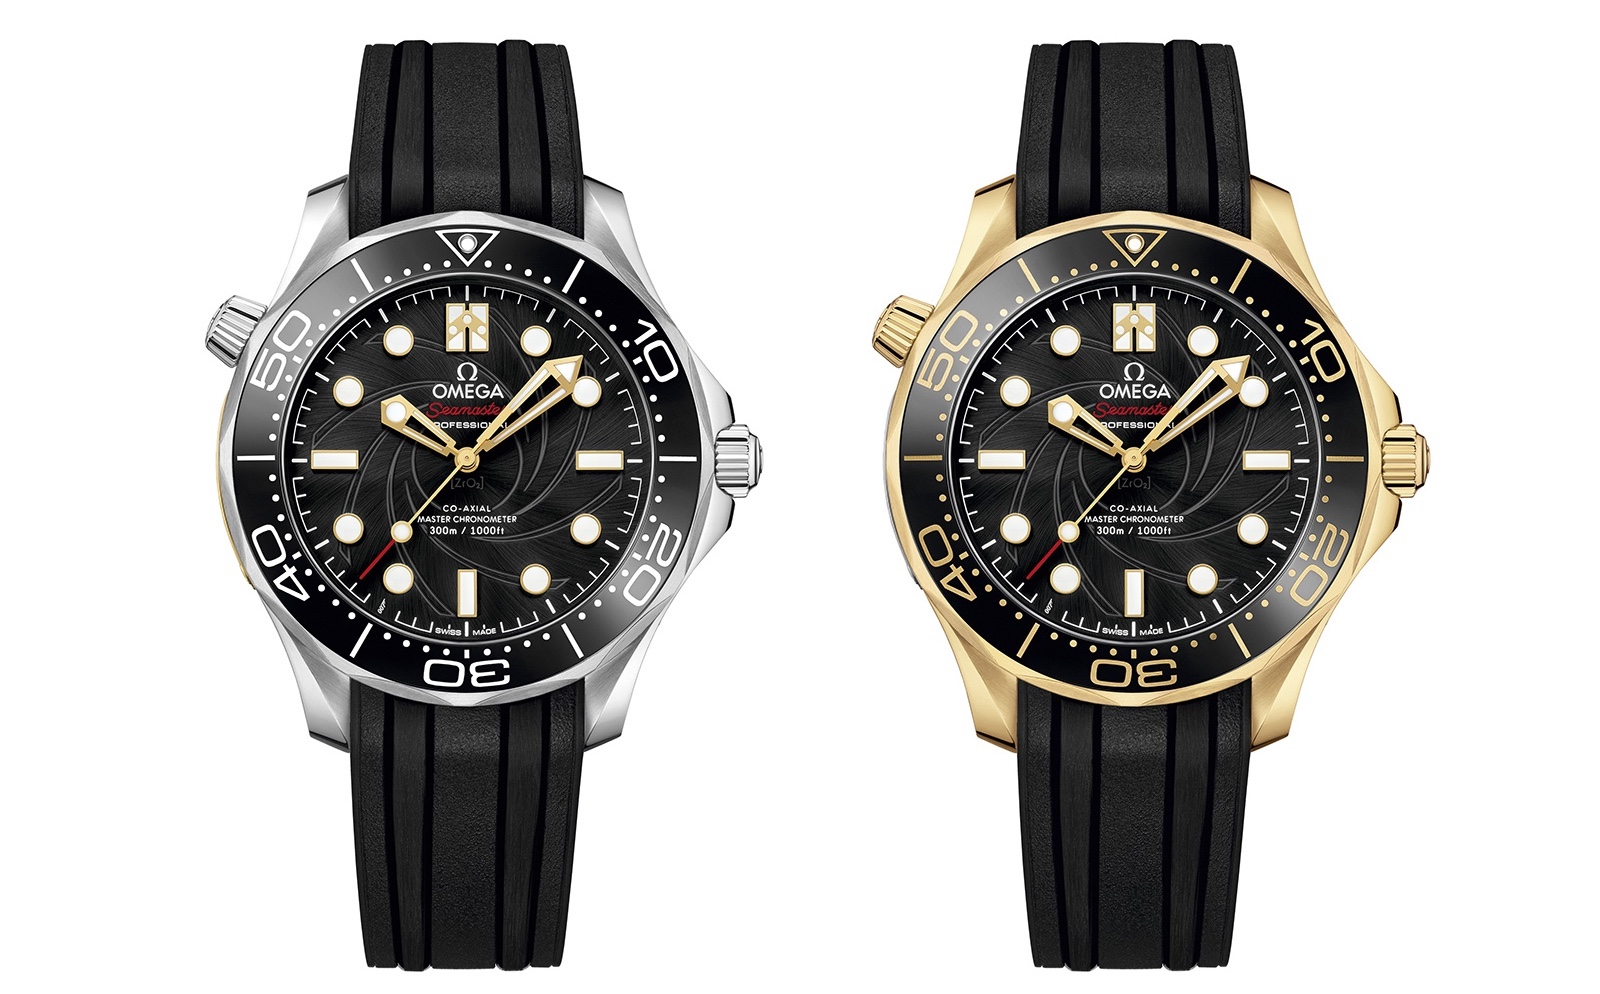 Omega The James Bond Set Limited Edition Yellow Gold Models